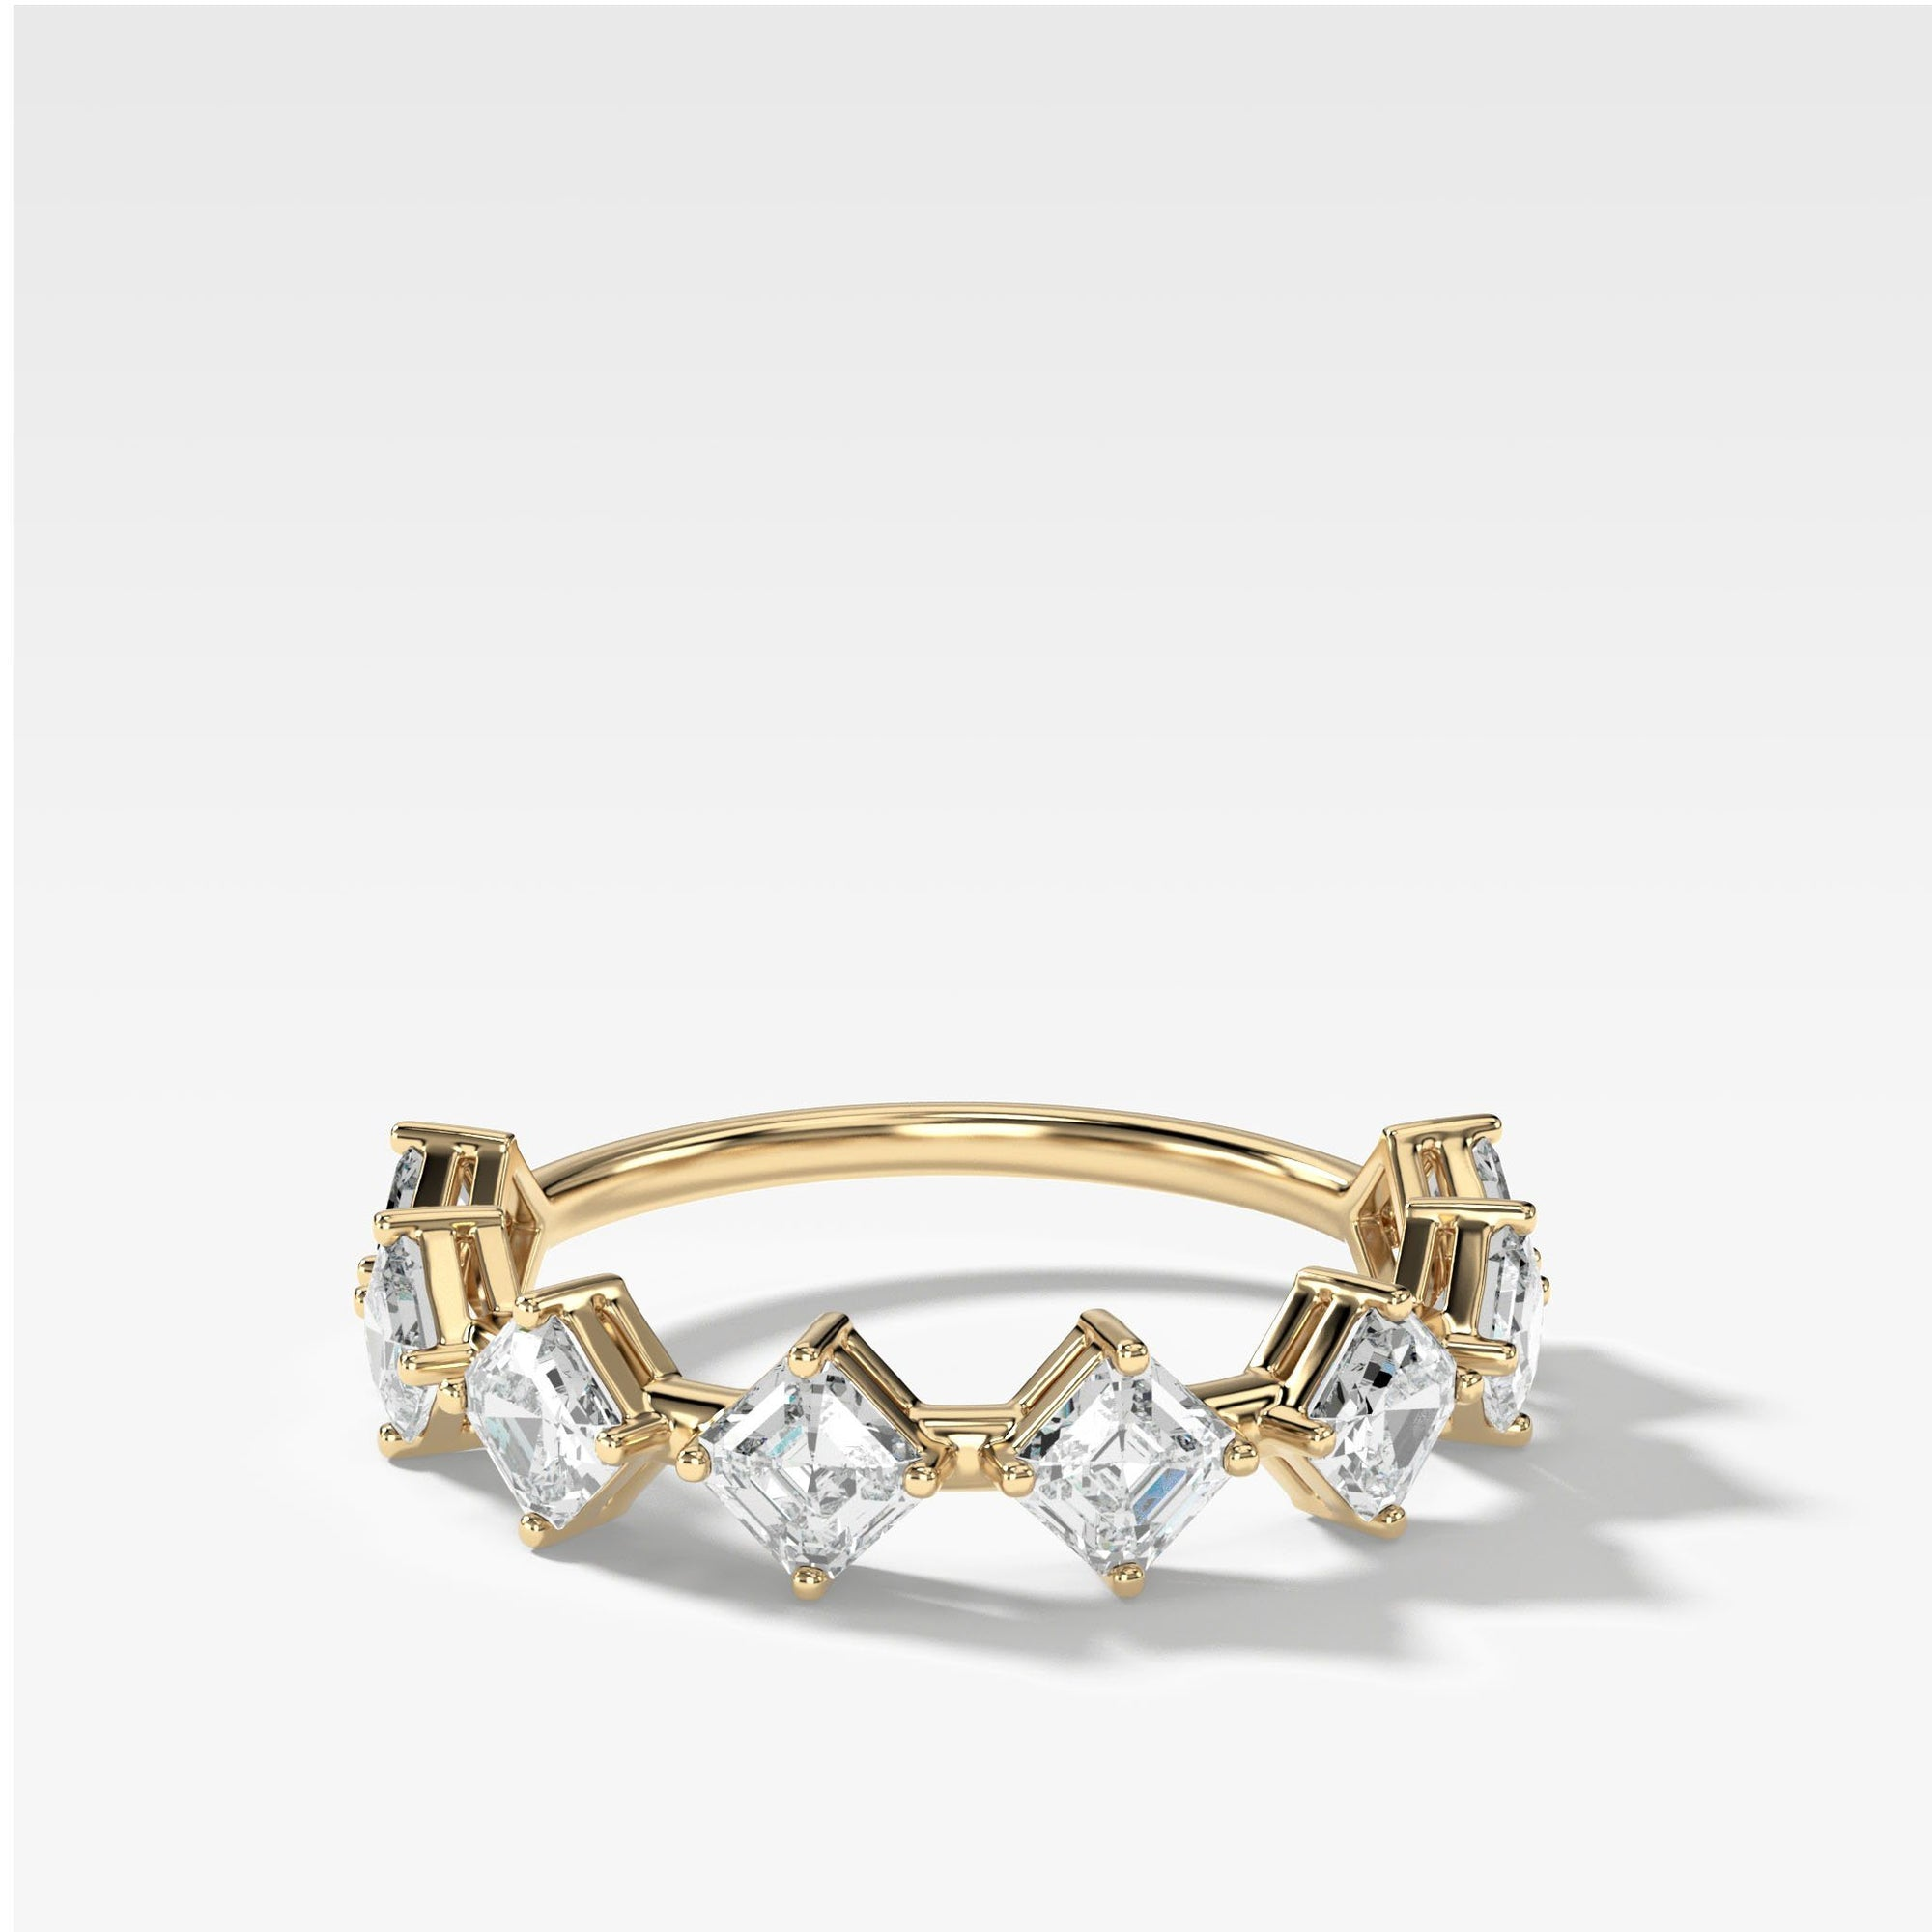 Spaced Asscher Cut Diamond Band in Yellow Gold by Good Stone